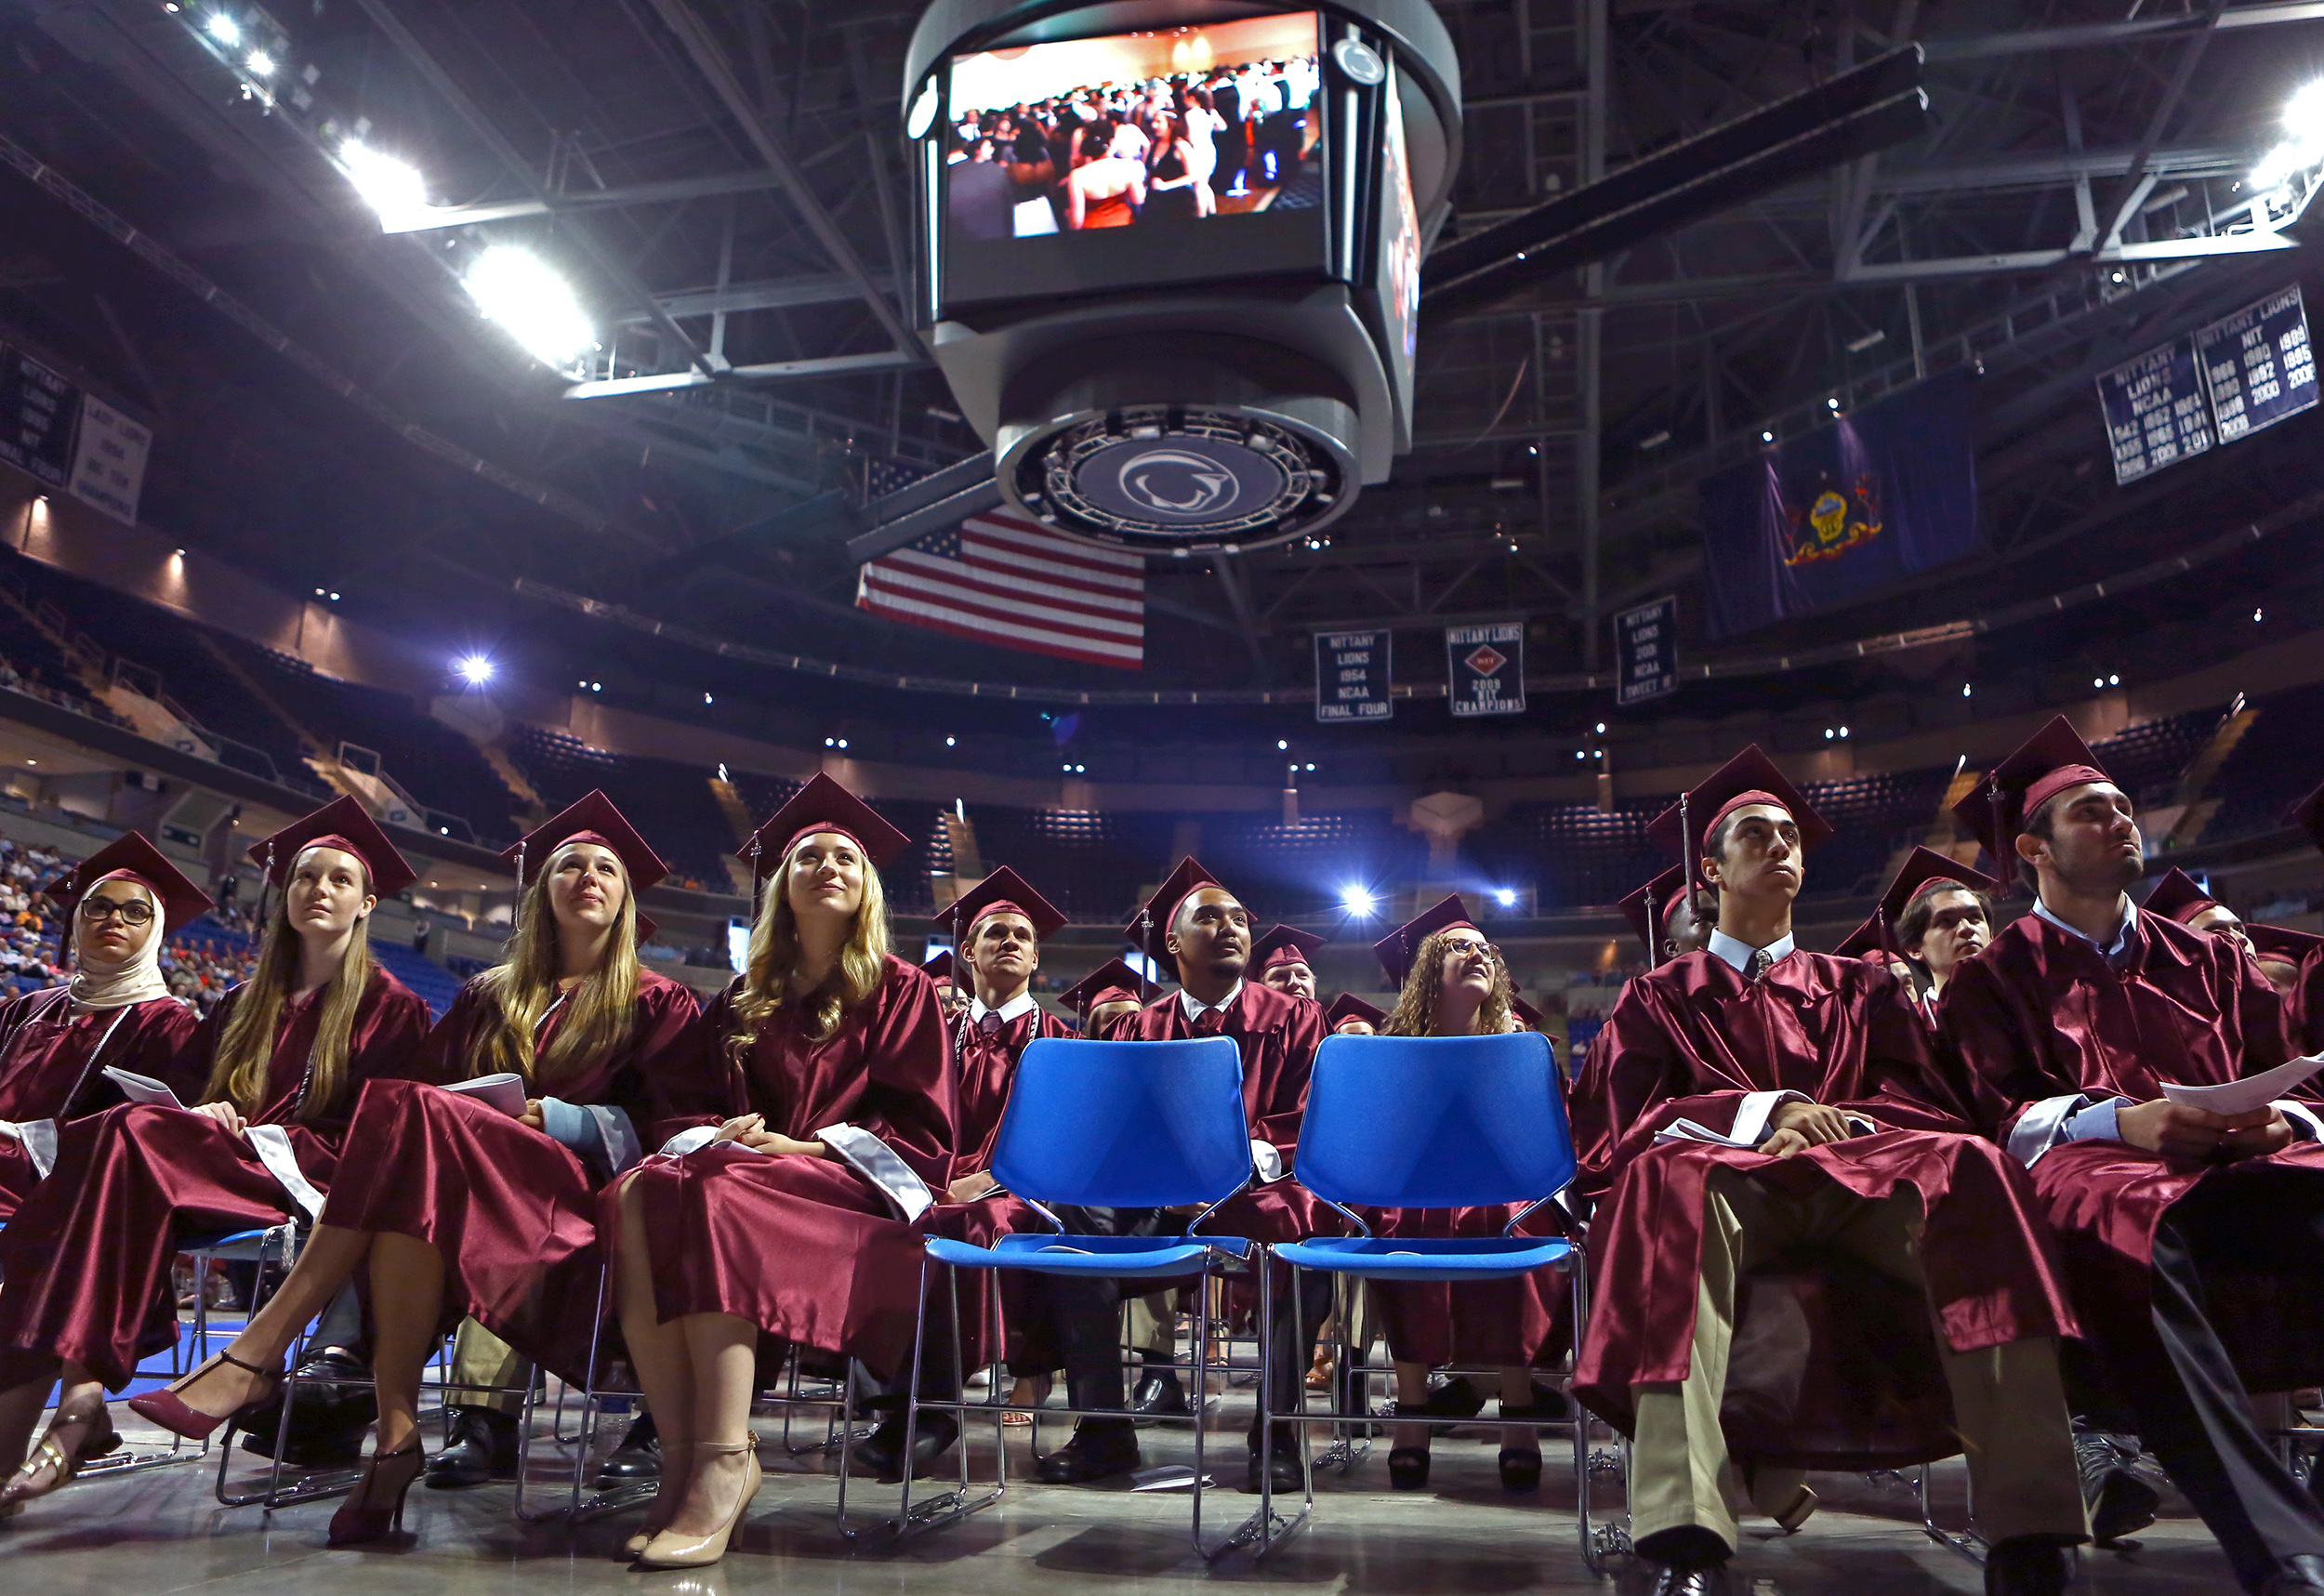 State College Area High School graduates watch the senior class video during the commencement ceremony at the Bryce Jordan Center on Saturday, June 11, 2016.